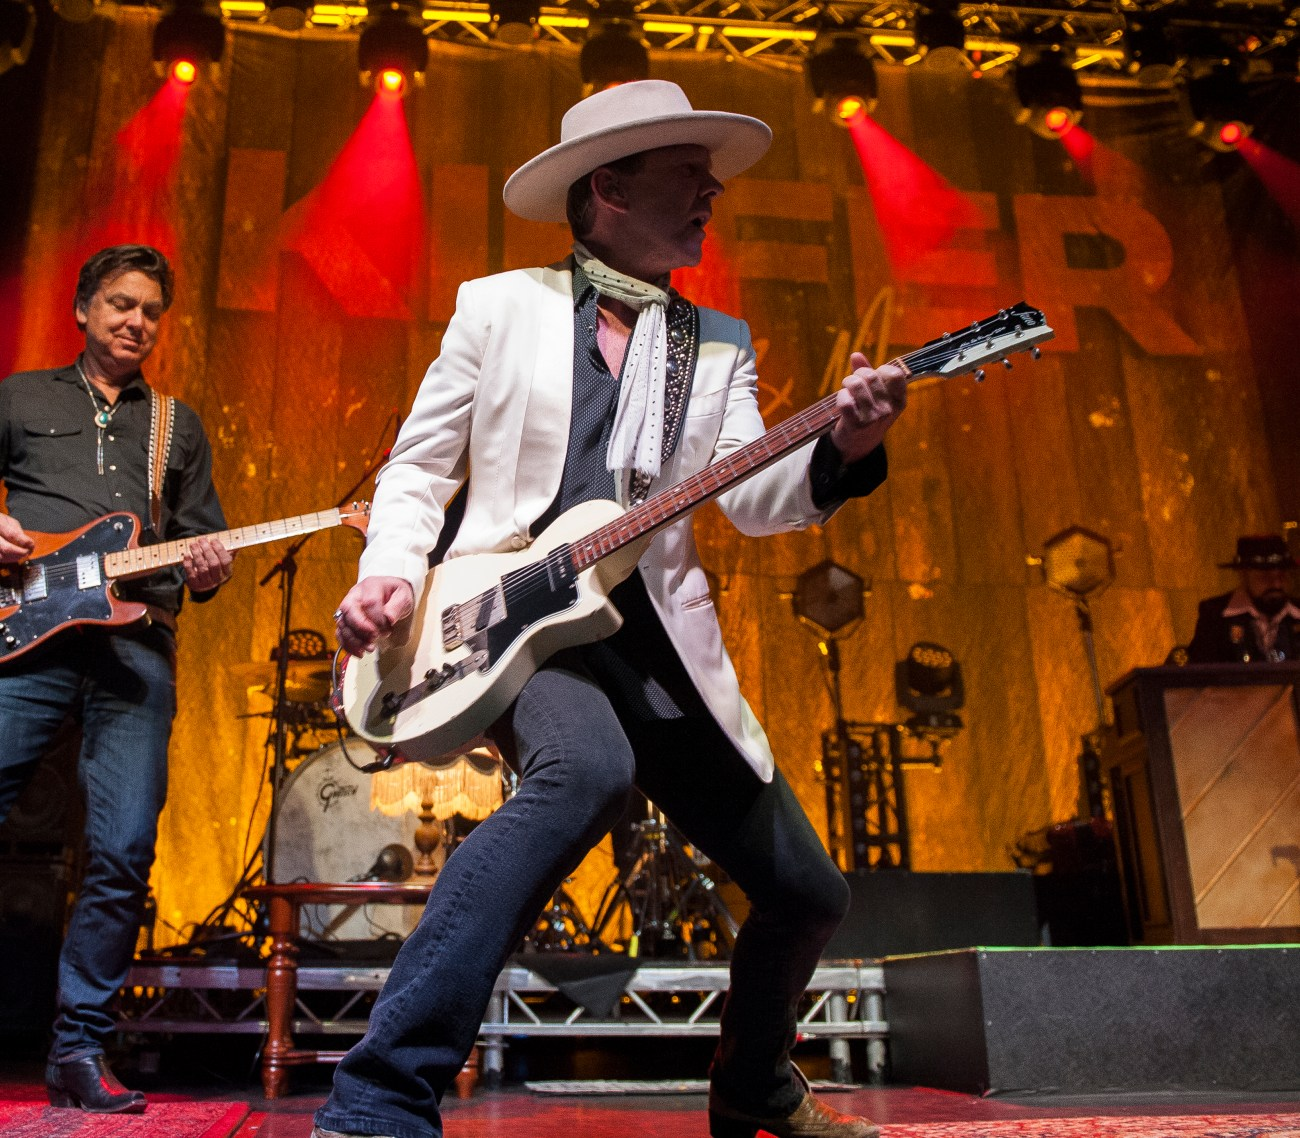 kiefer sutherland manchester ritz by mike ainscoe 3